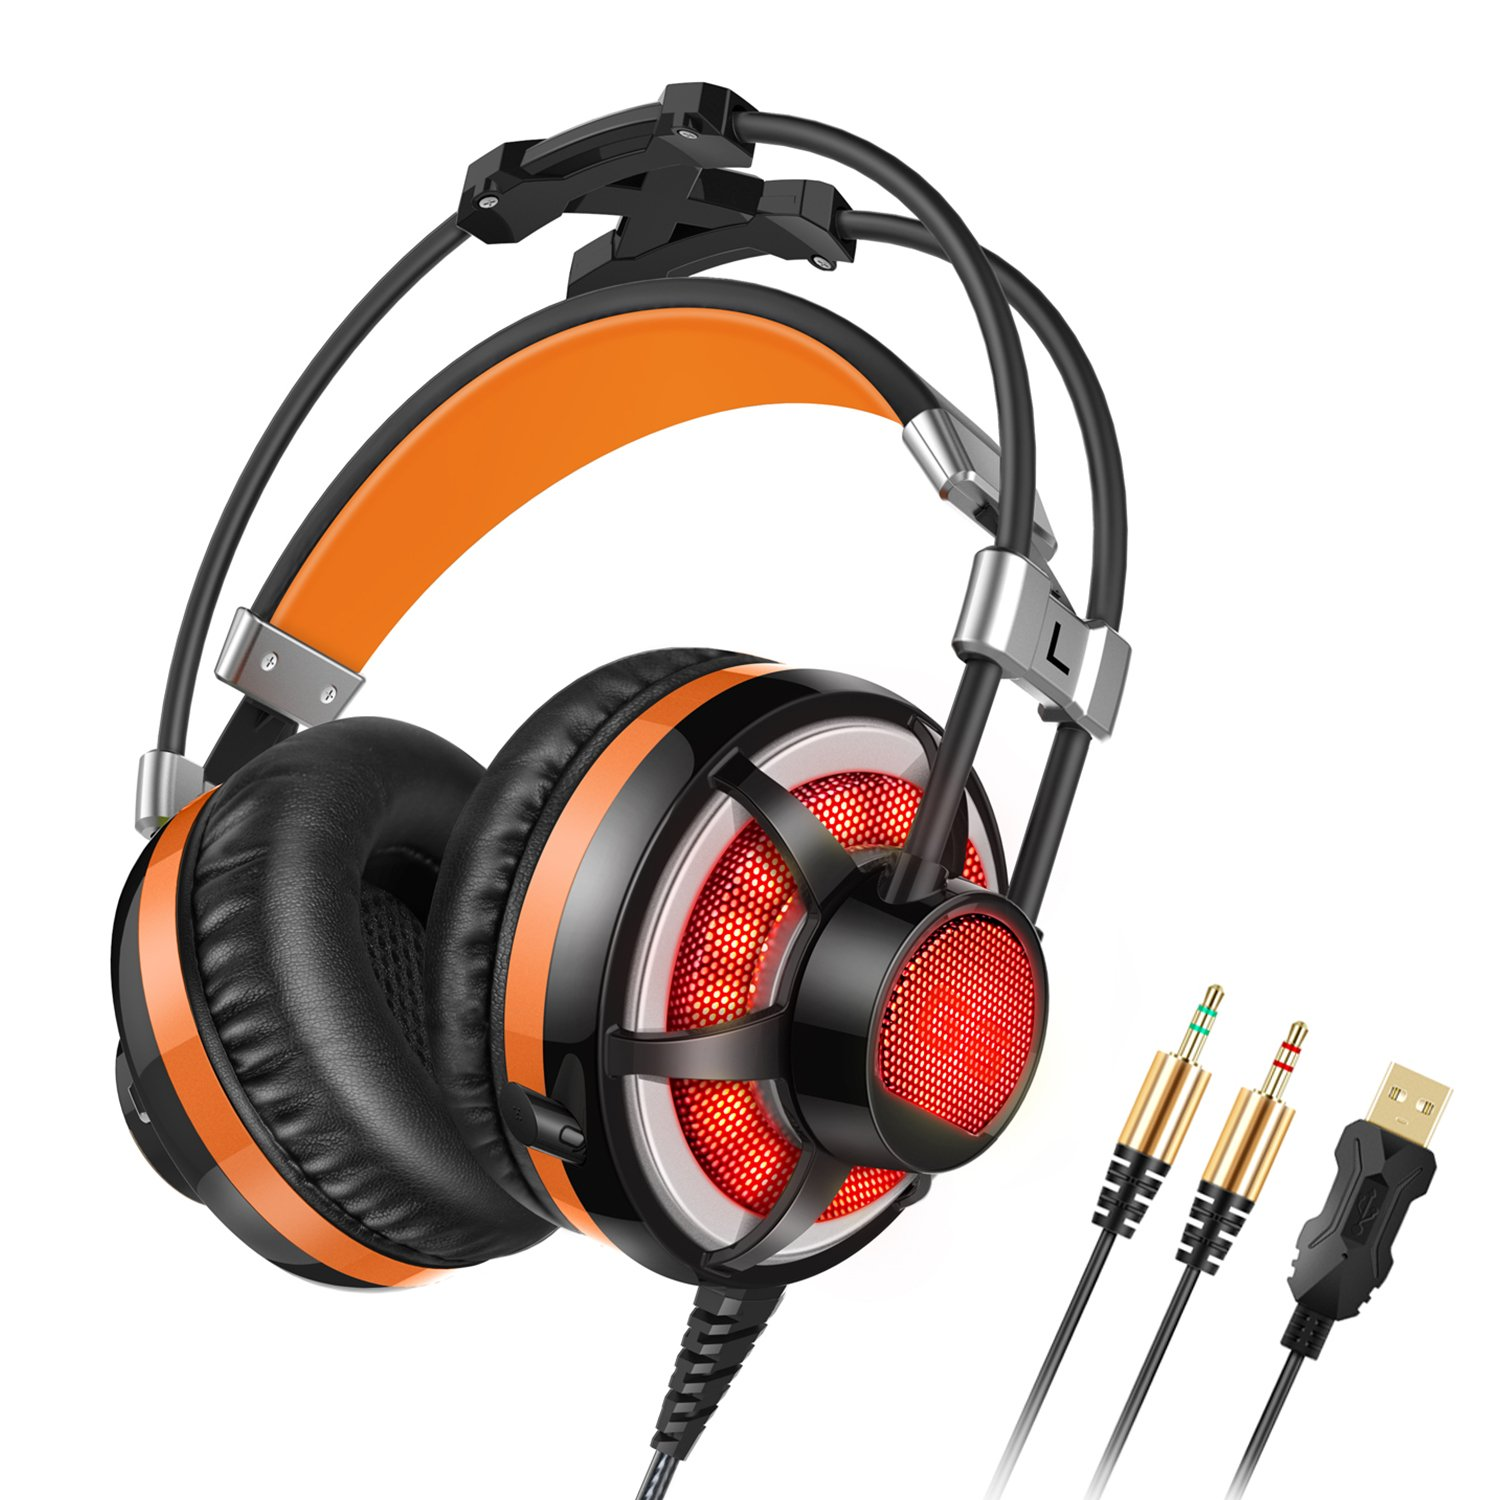 On Sale Honstek G6 Pc Gaming Headset Over Ear Led With Microphone Philips Headphone Shm1900